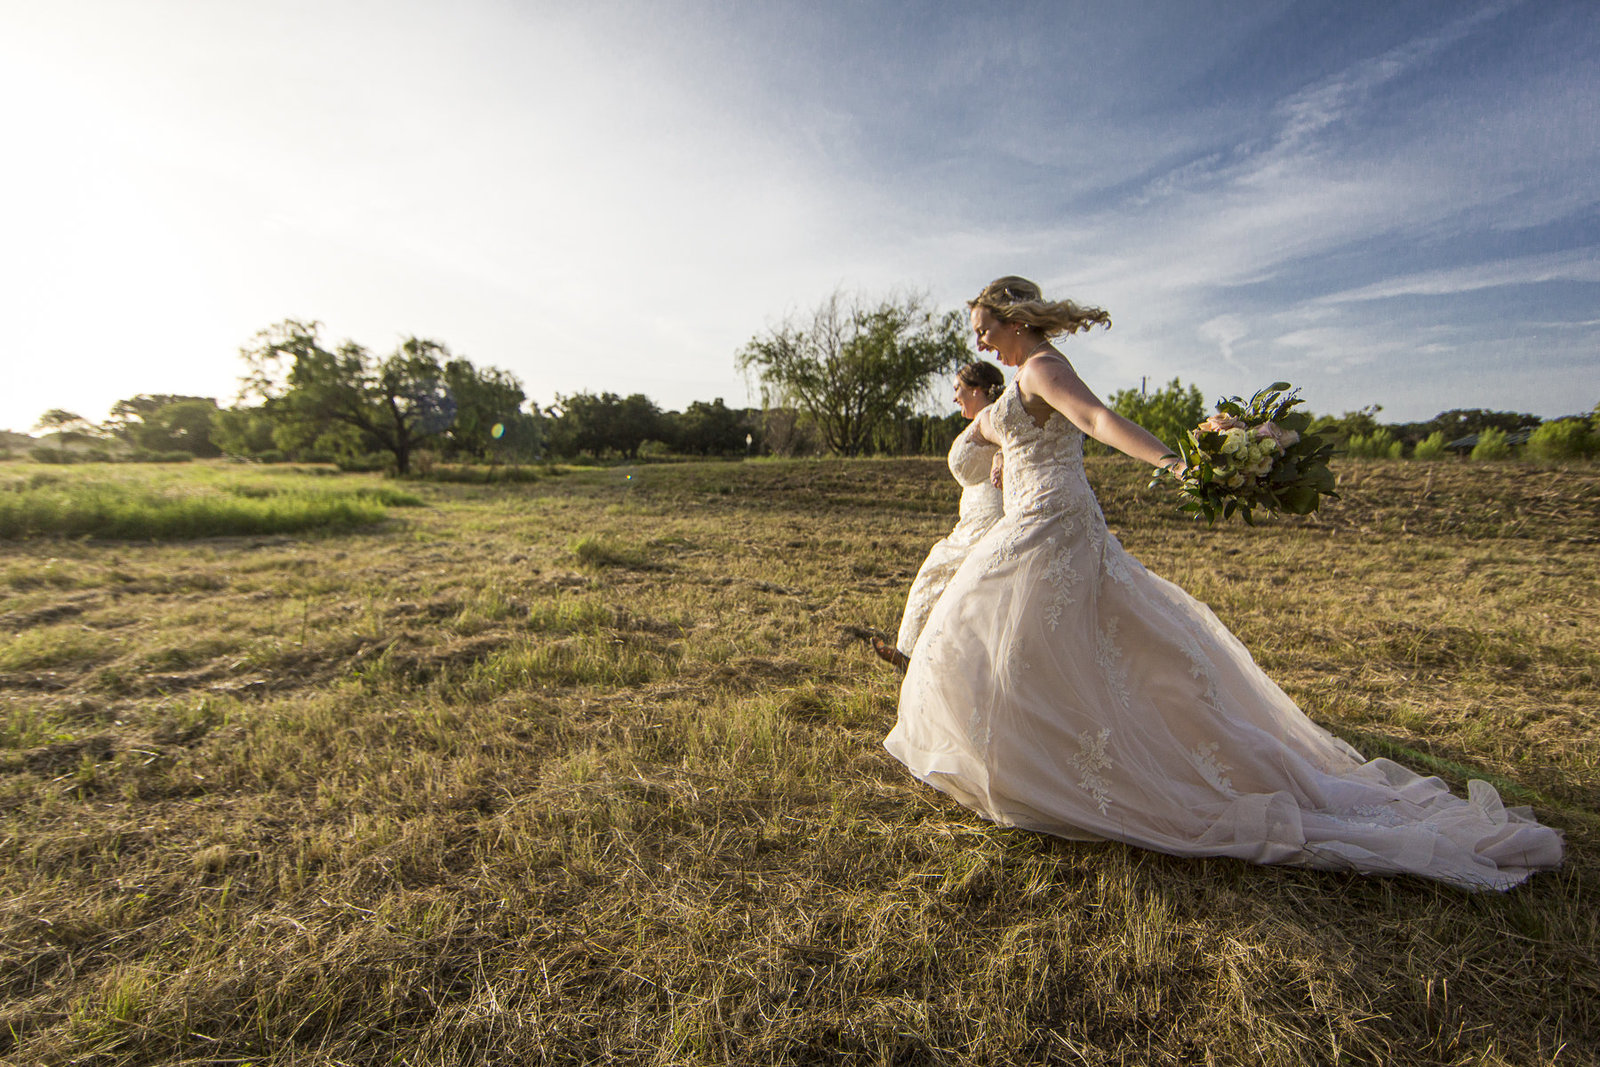 johnson-city-tx=king-river-ranch-rustic-wedding-andrew-morrell-1-6